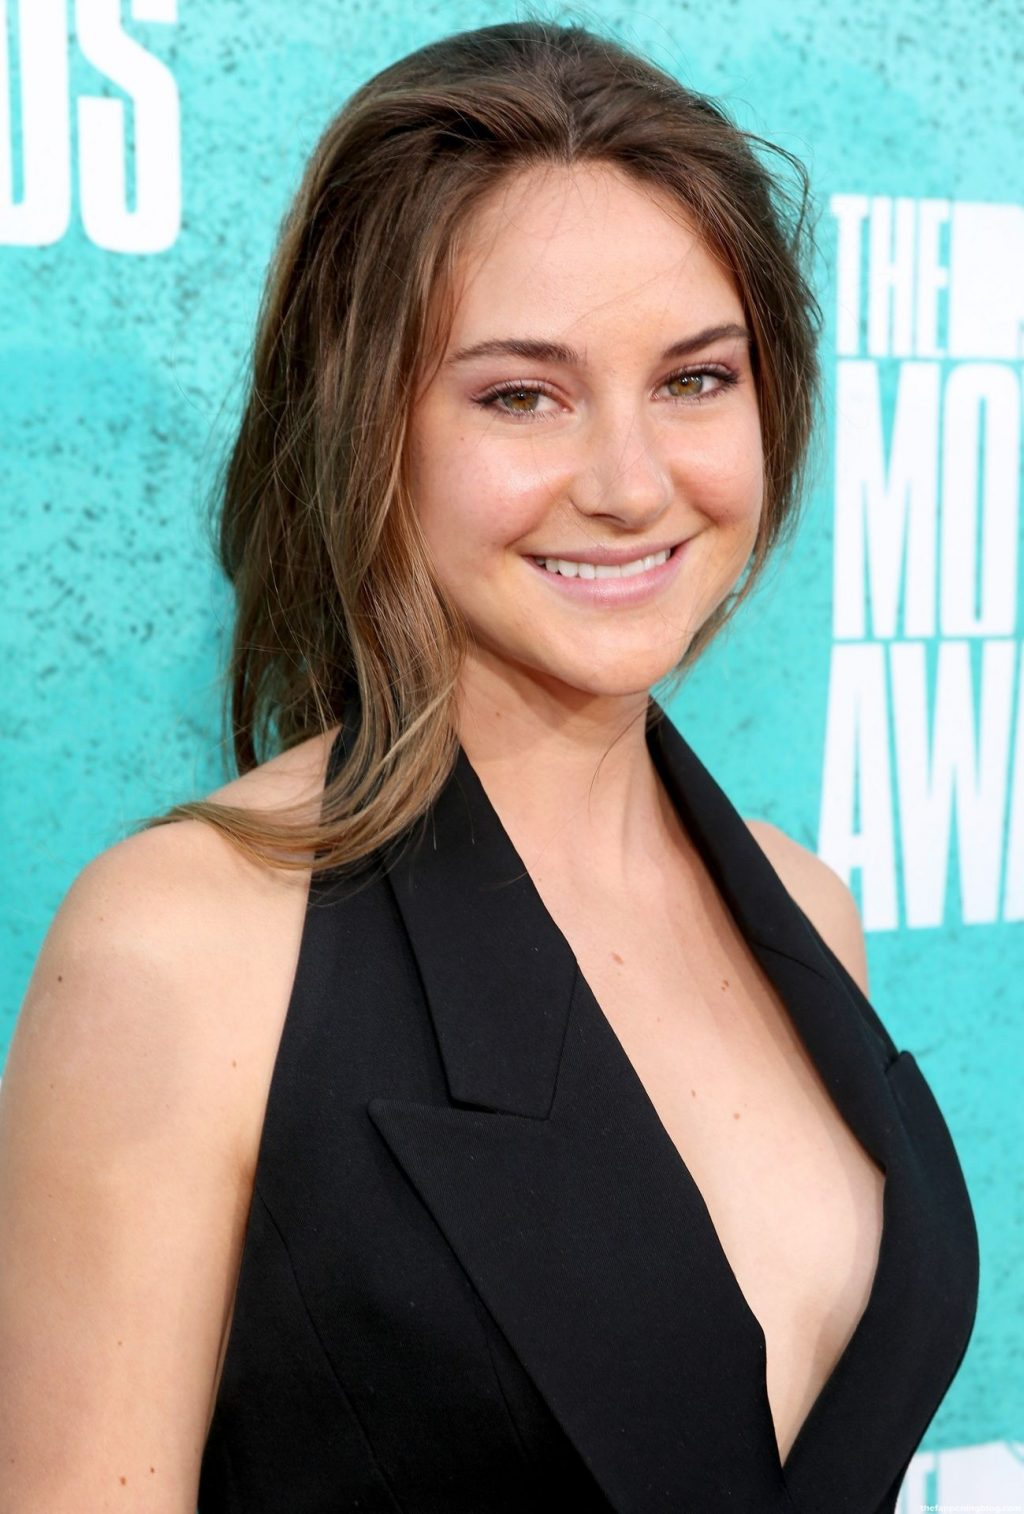 Shailene Woodley Nude Leaked The Fappening & Sexy Collection (148 Photos + Sex Video Scenes) [Updated]